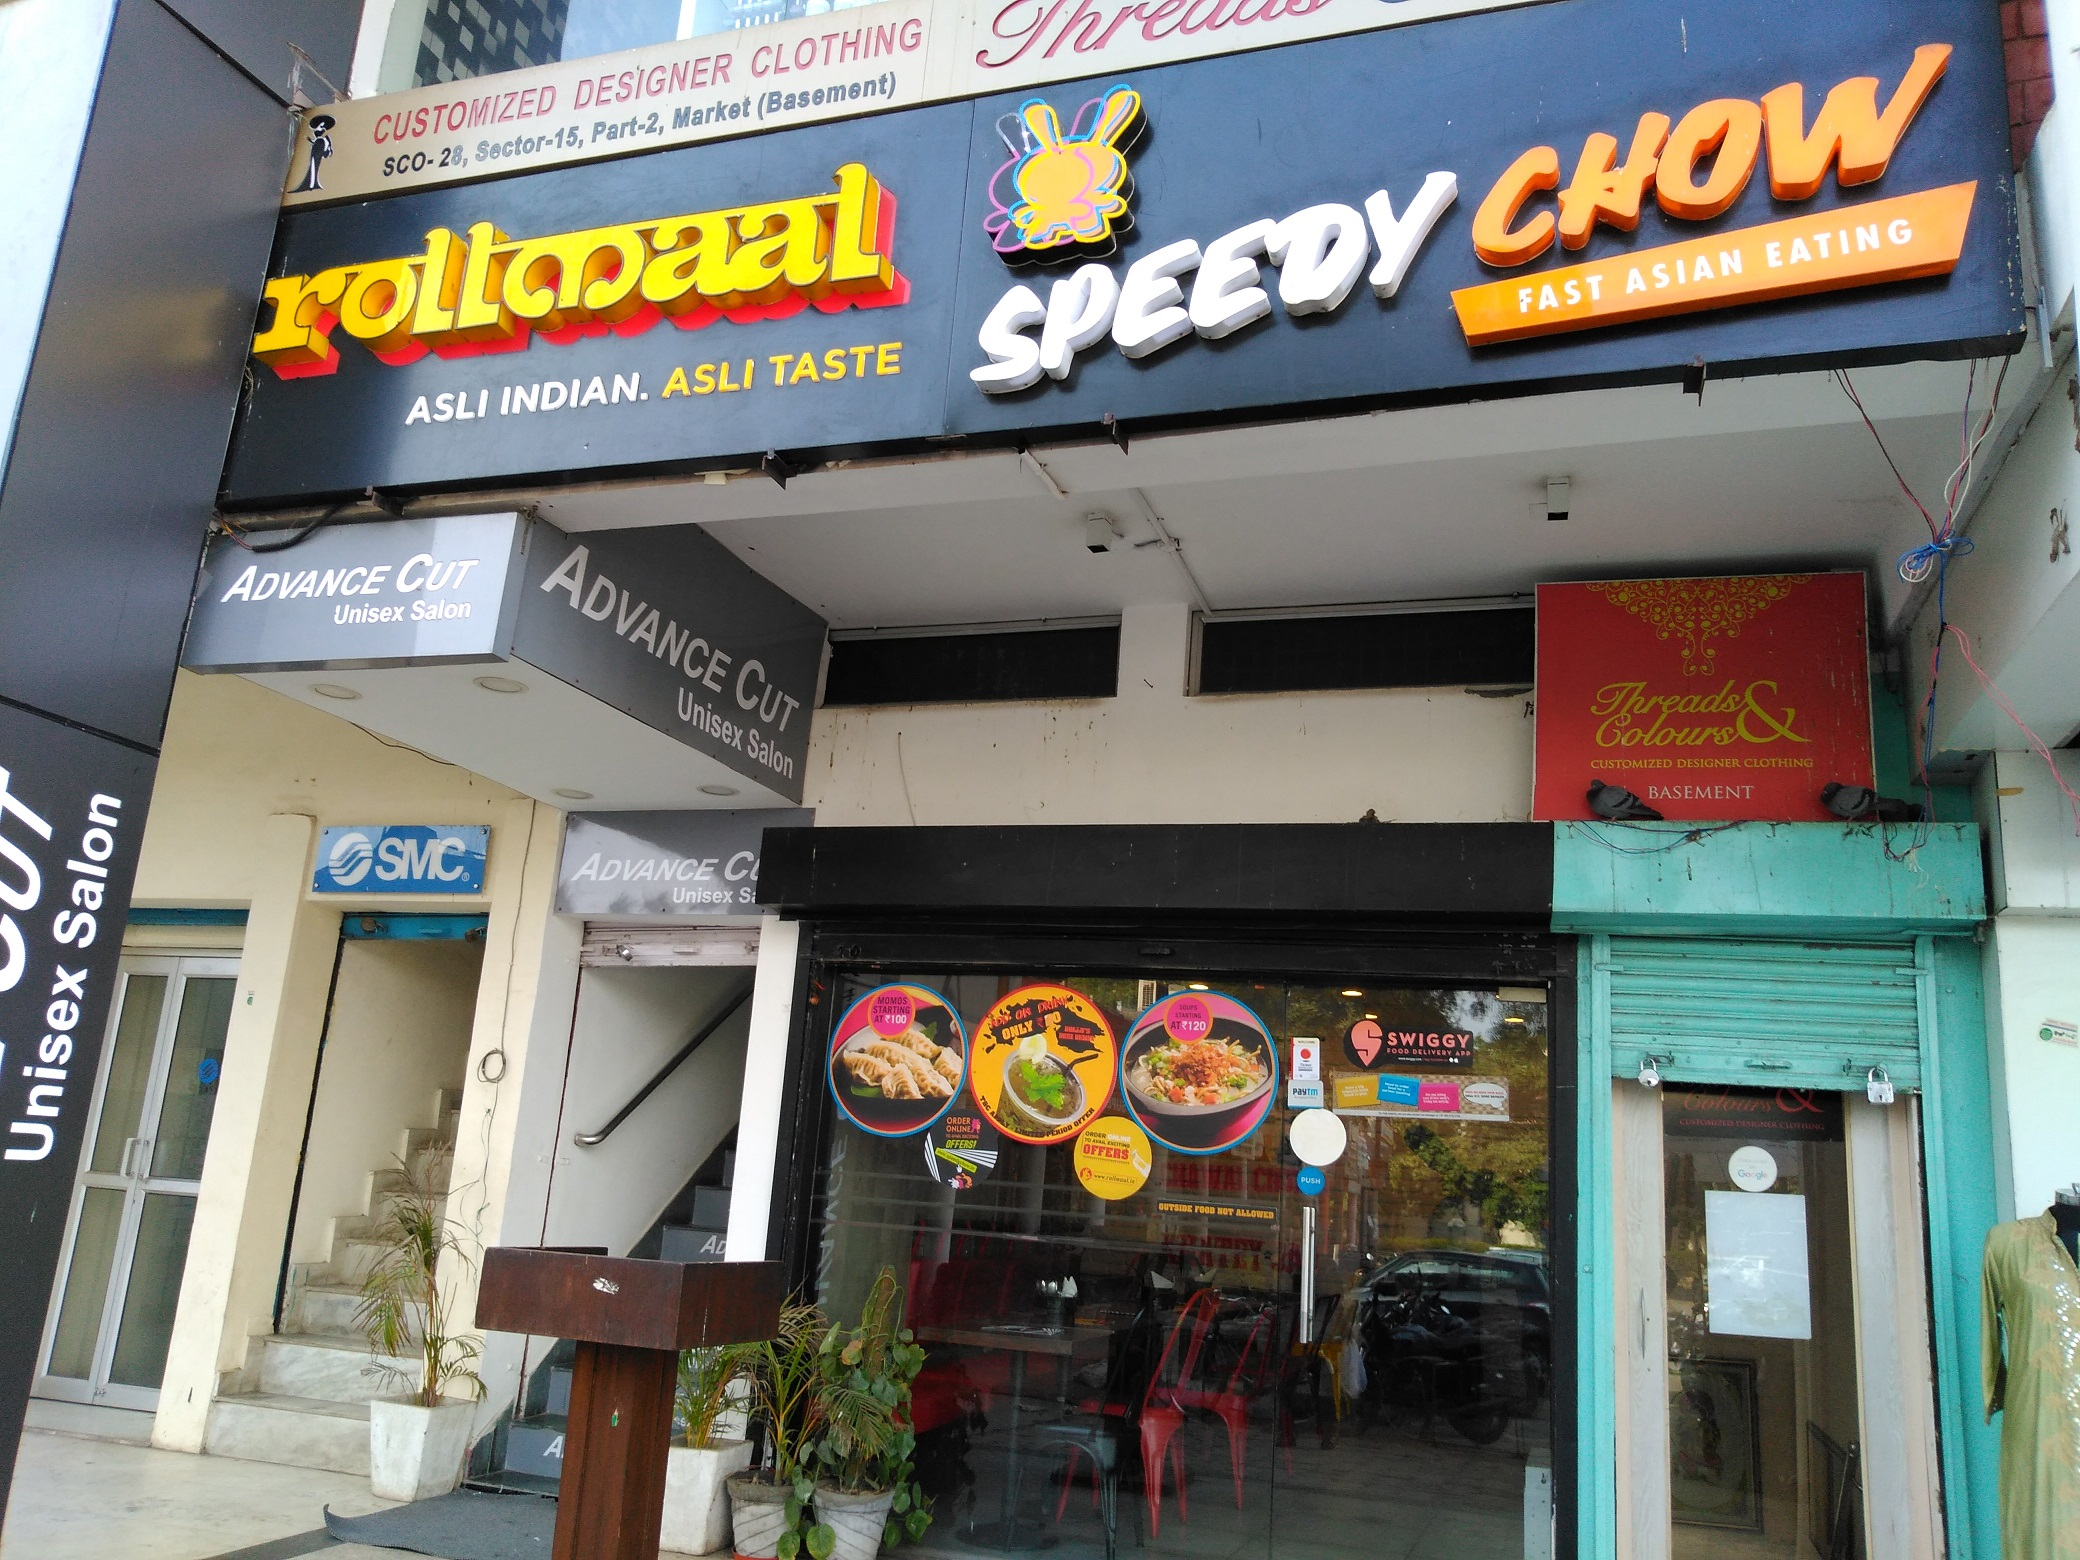 Rollmaal and Speedy Chow : Have you rolled yet?